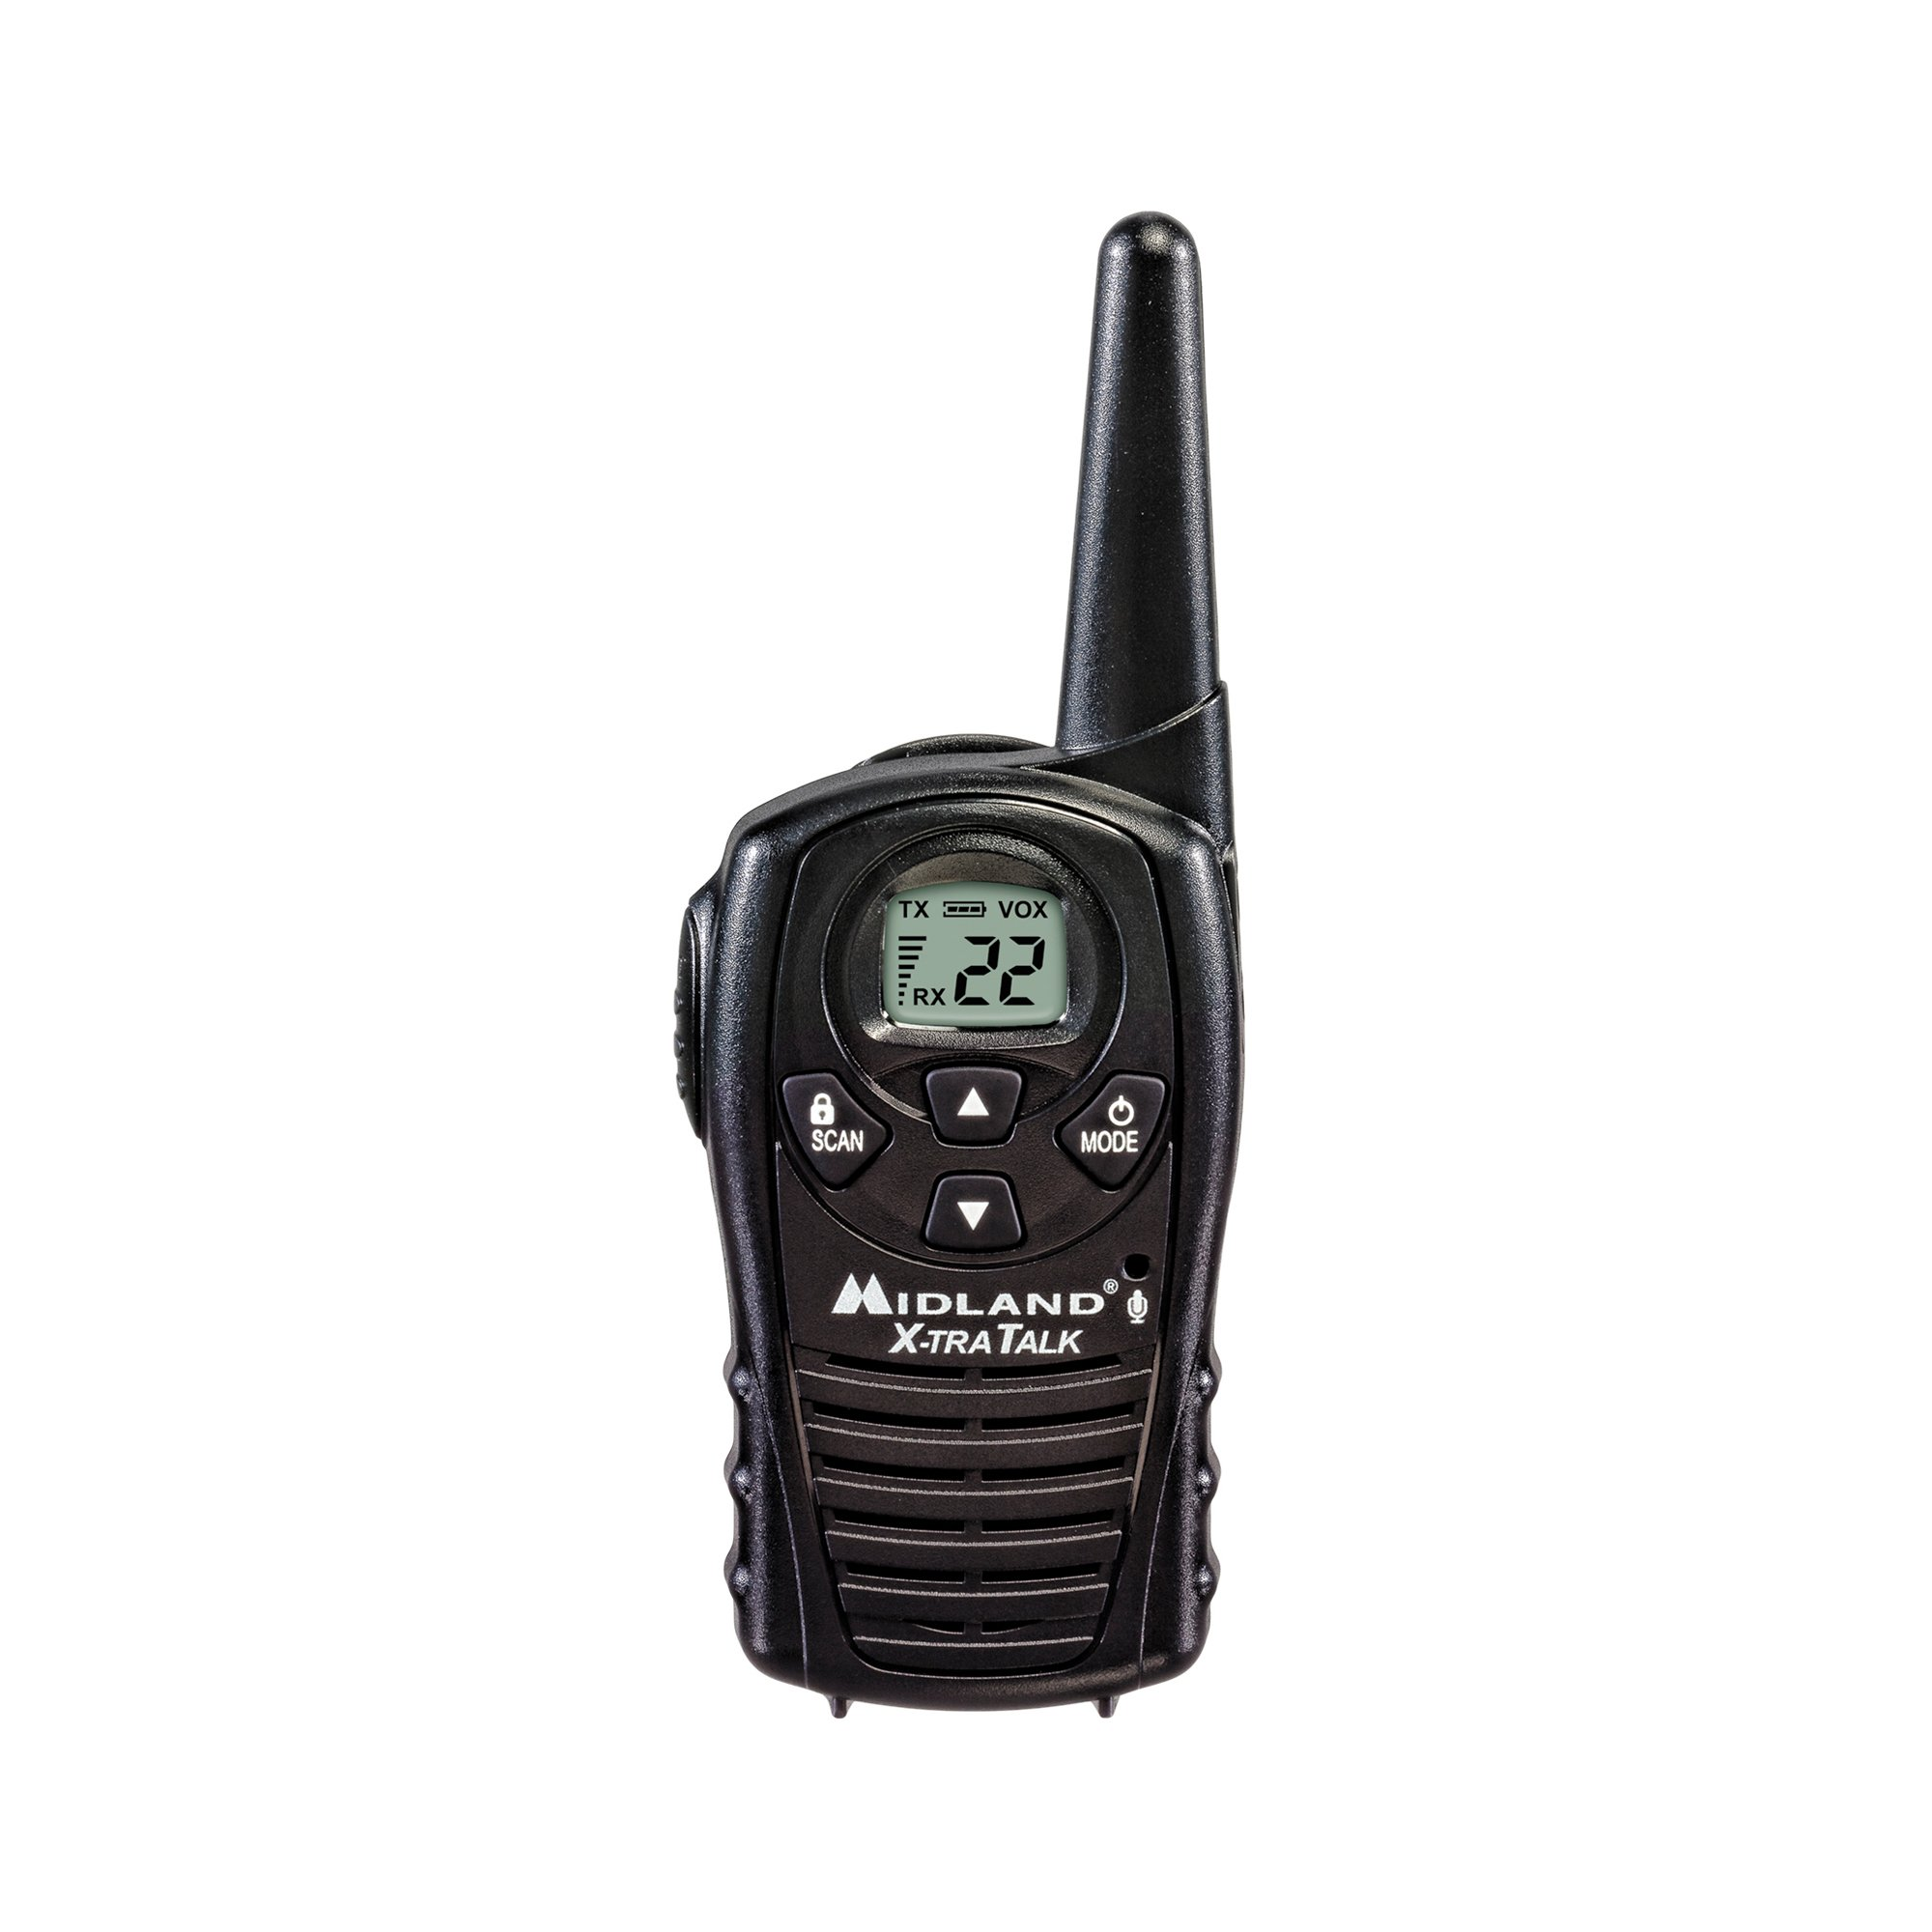 Midland - LXT118, FRS Walkie Talkies with Channel Scan - Up to 18 Mile Range Two Way Radio, Hands-Free VOX, Water Resistant (Pair Pack) (Black) by Midland (Image #2)